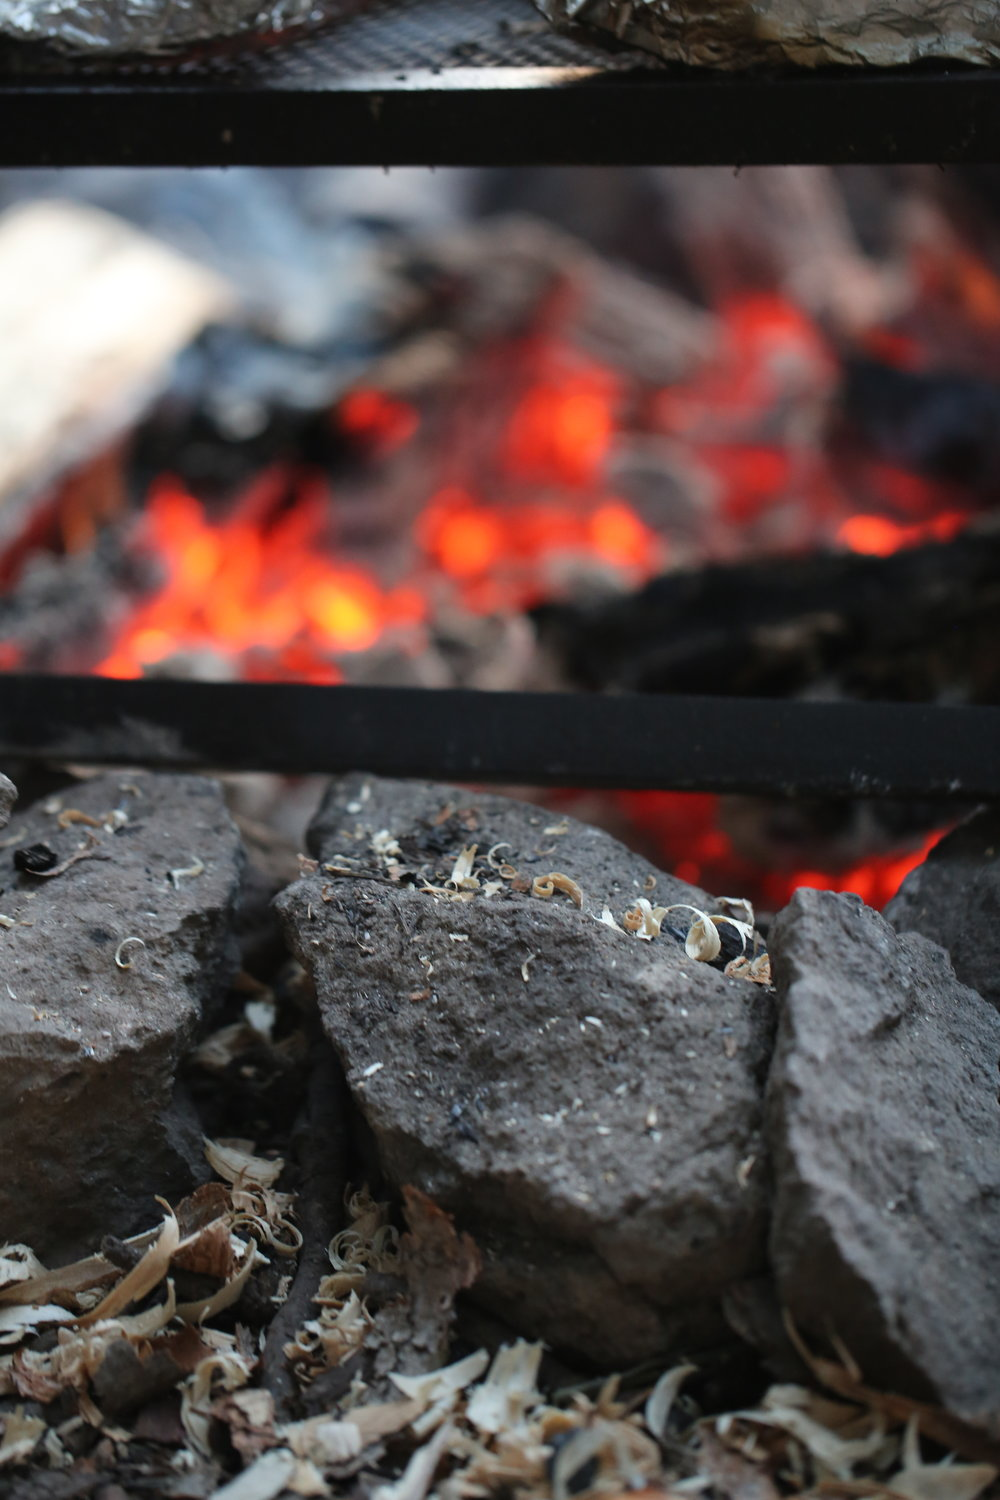 its a good idea to spread coals out evenly so heat is distributed ACROSS your cooking area